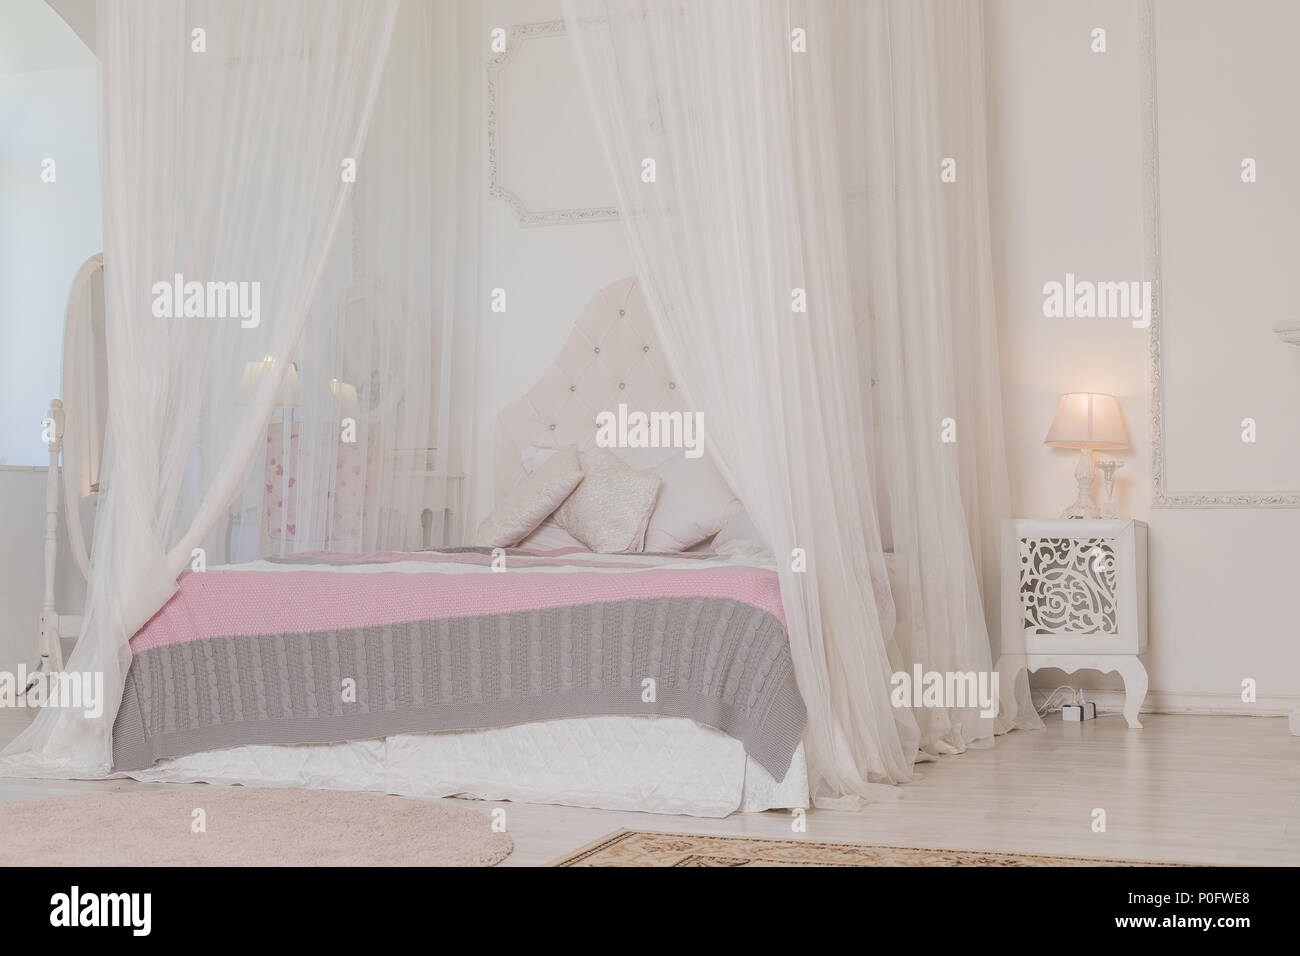 Bedroom In Soft Light Colors With A Wooden Floor Big Comfortable Four Poster Double Bed In Elegant Classic Bedroom Natural White With Wood Interior Design Large Bed Stock Photo Alamy